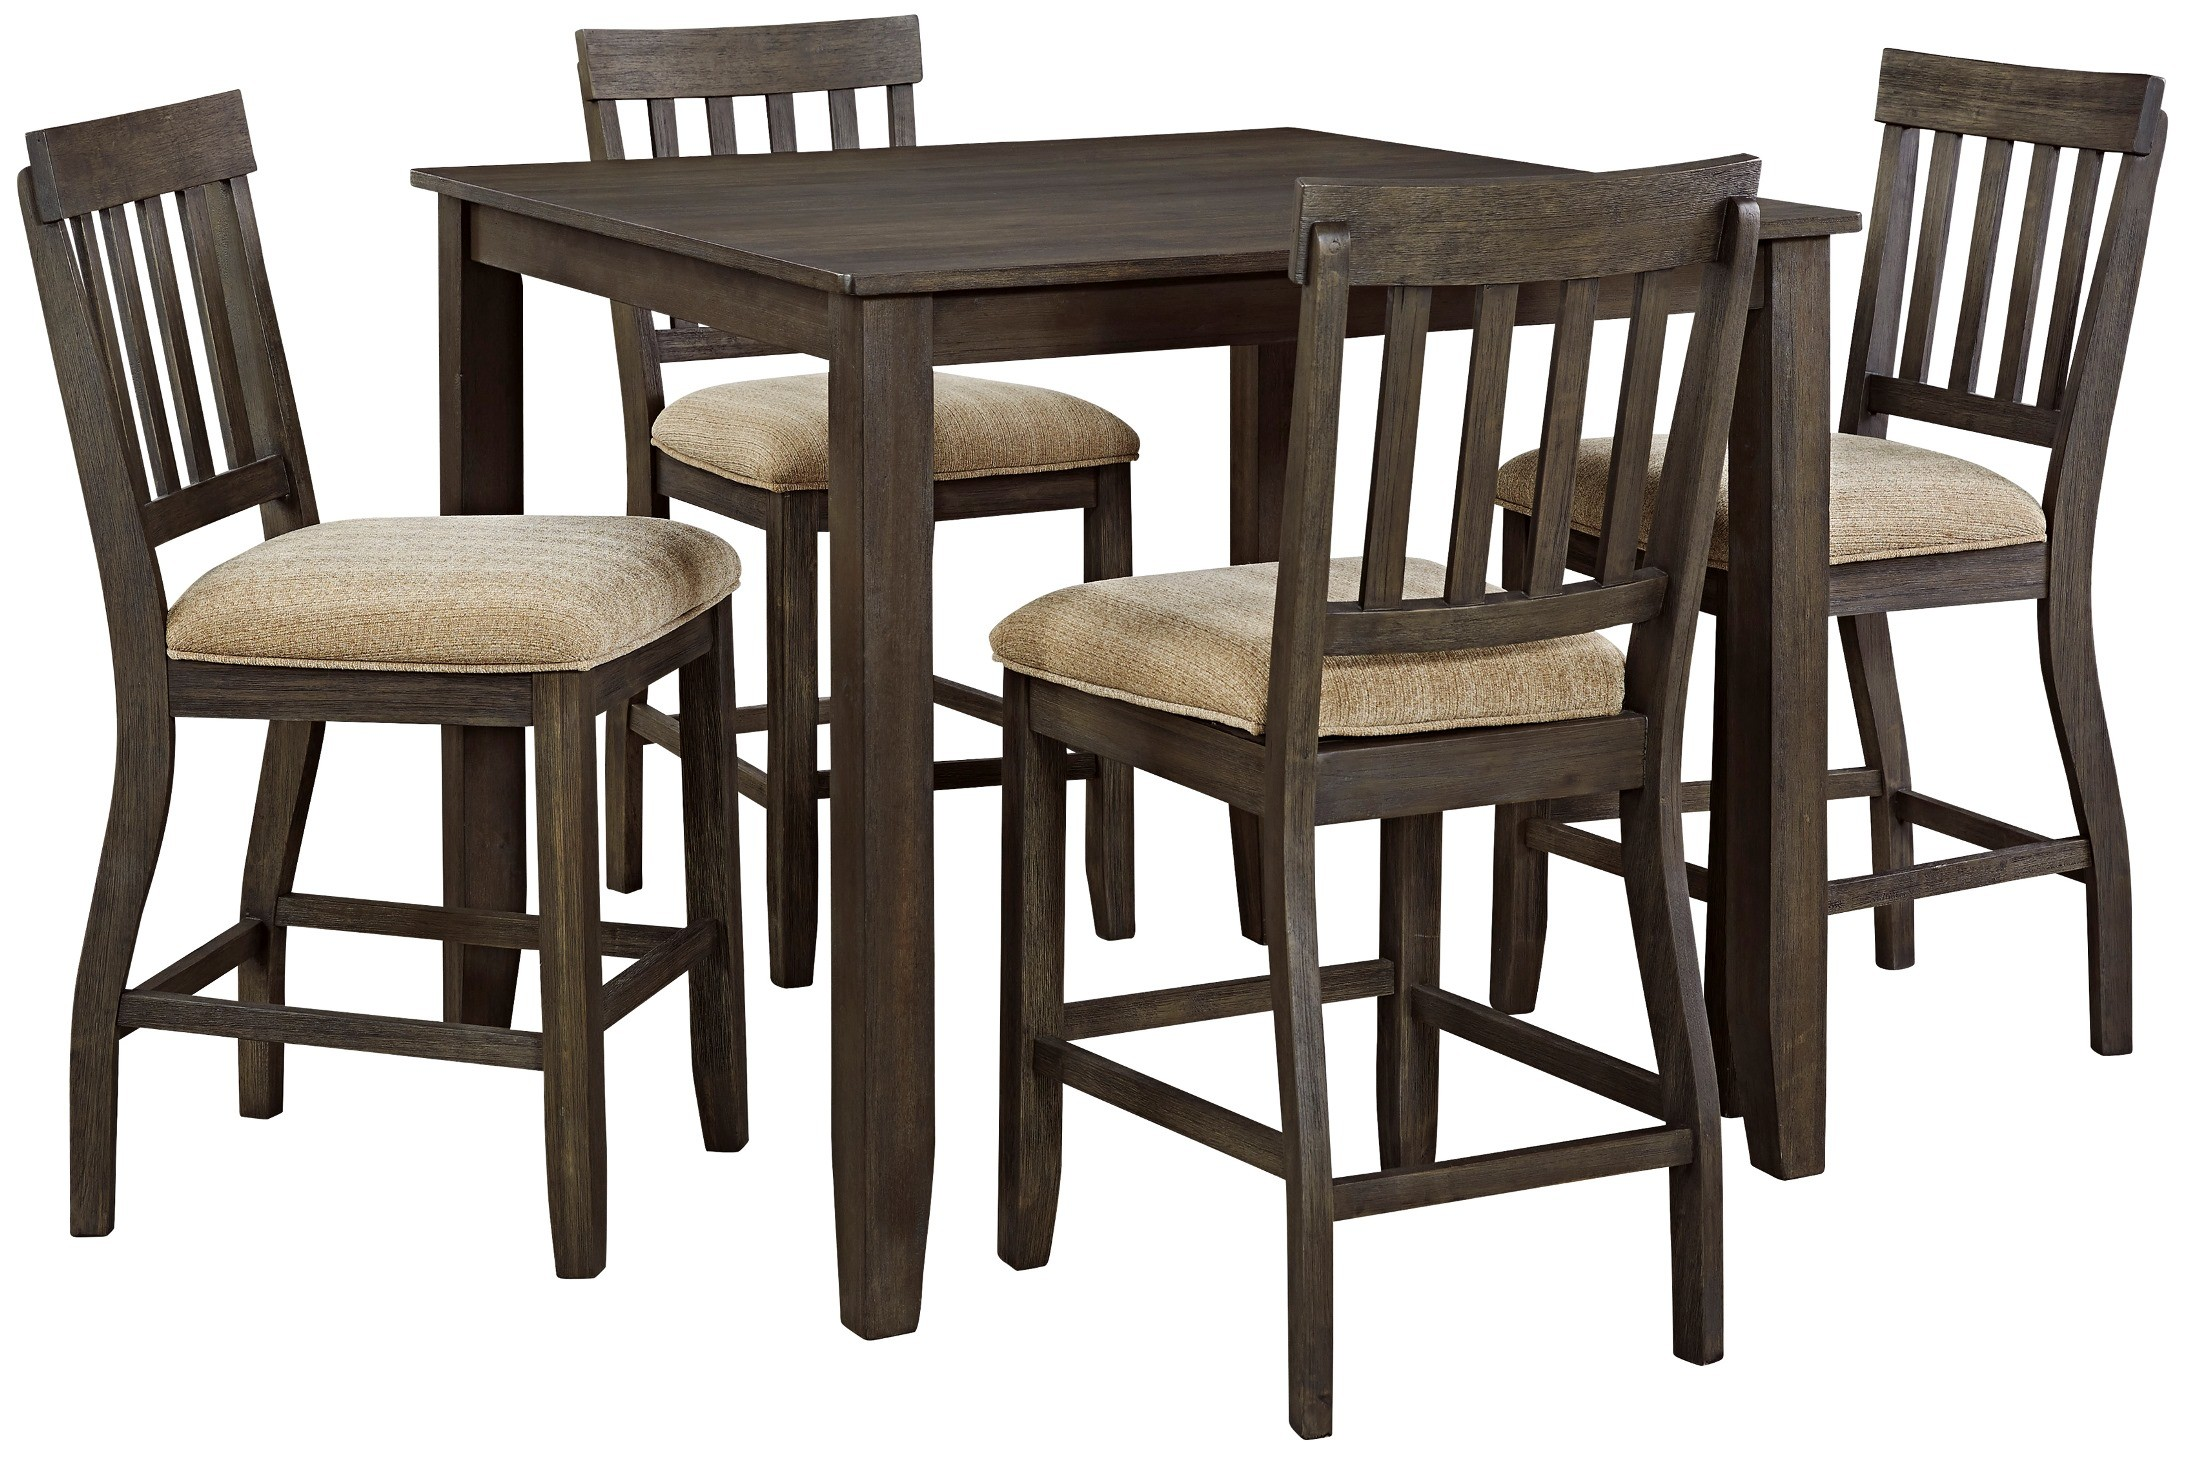 dresbar grayish brown square counter height dining room set from ashley coleman furniture. Black Bedroom Furniture Sets. Home Design Ideas